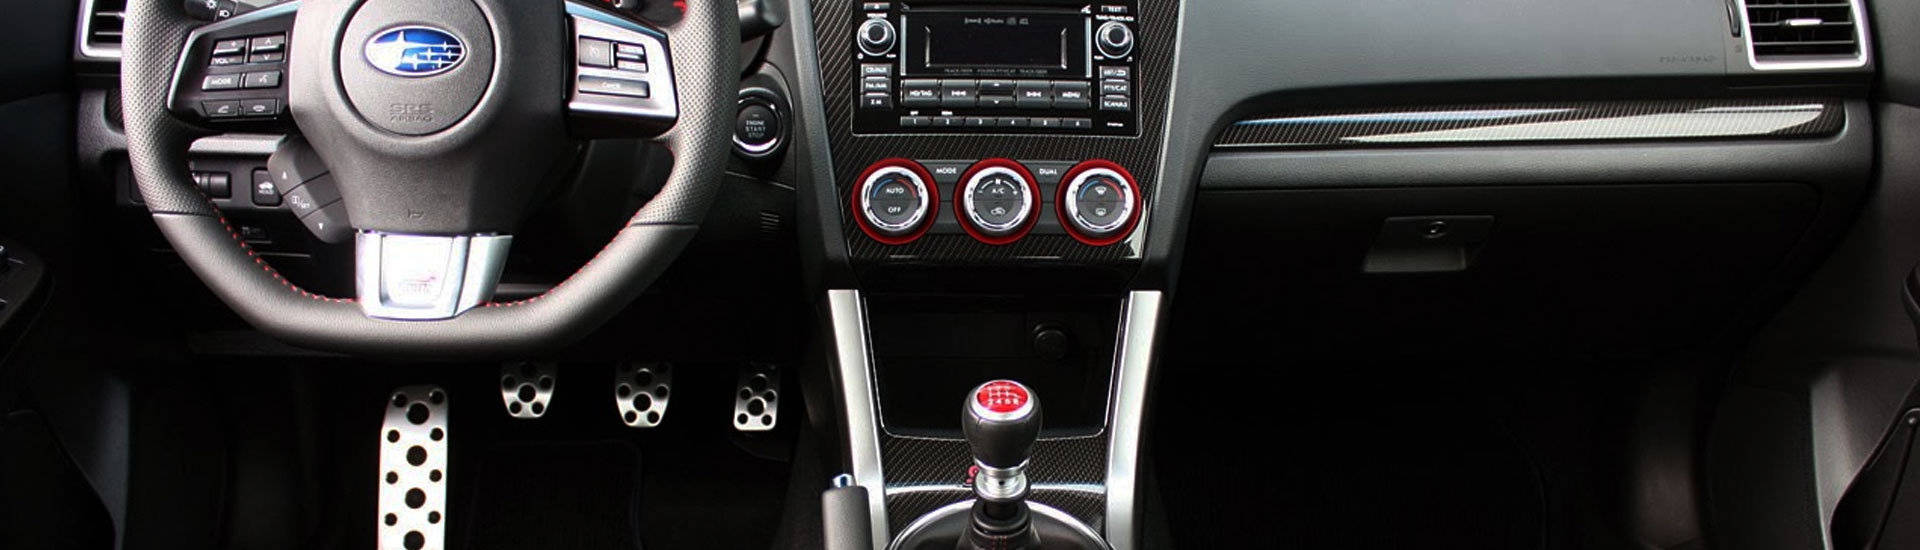 Customized Dash Kits